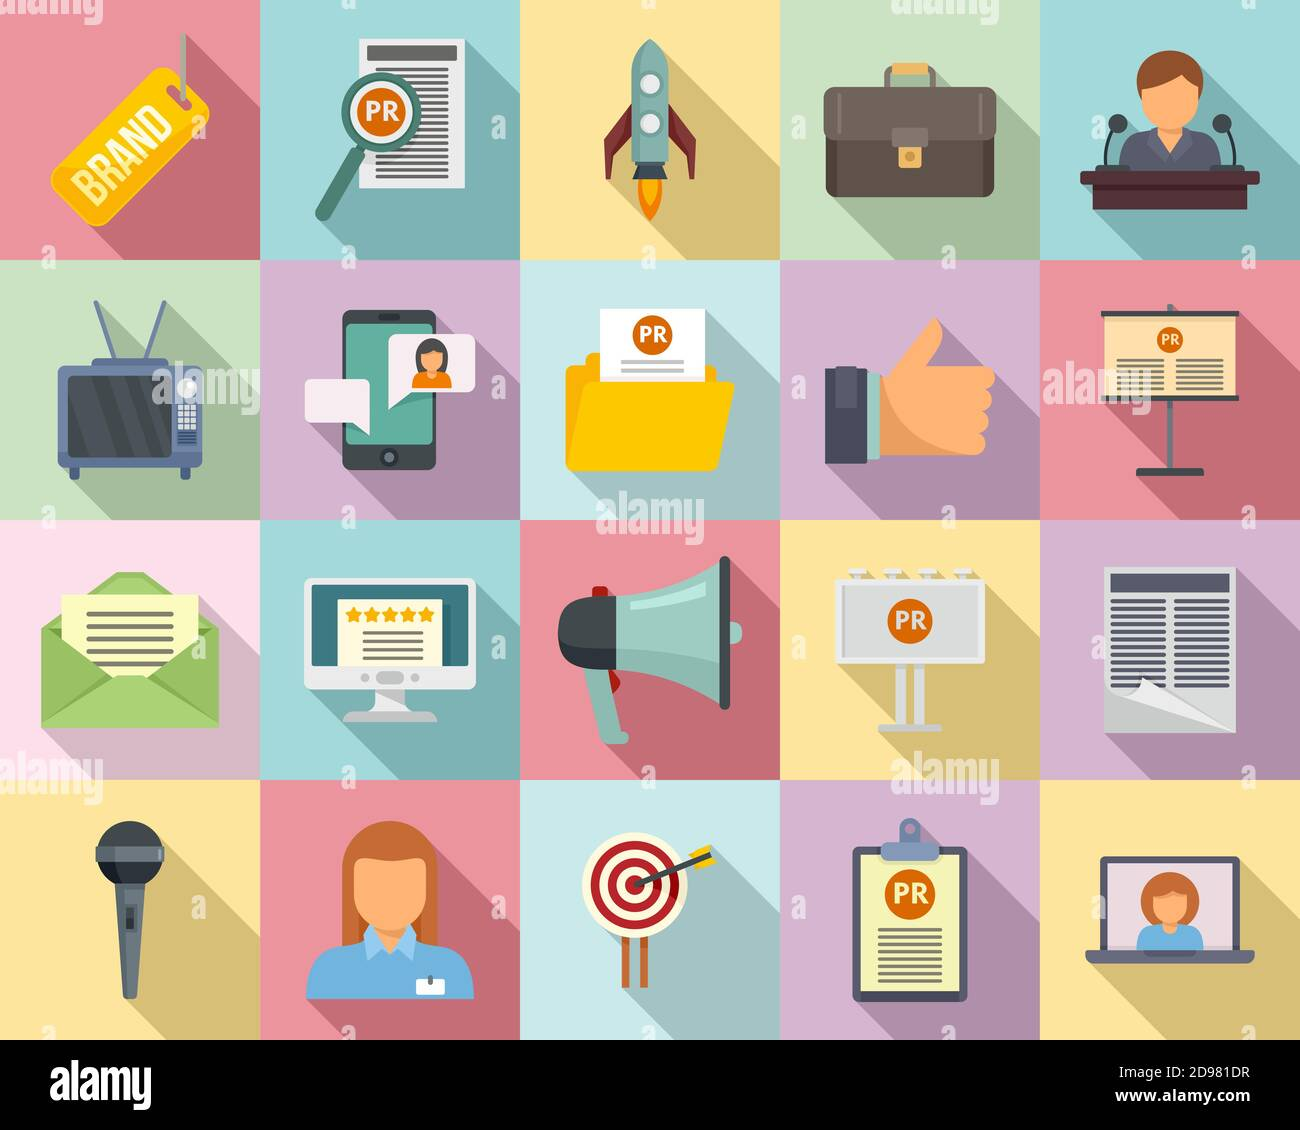 Pr Specialist Icons Set Flat Style Stock Vector Image Art Alamy